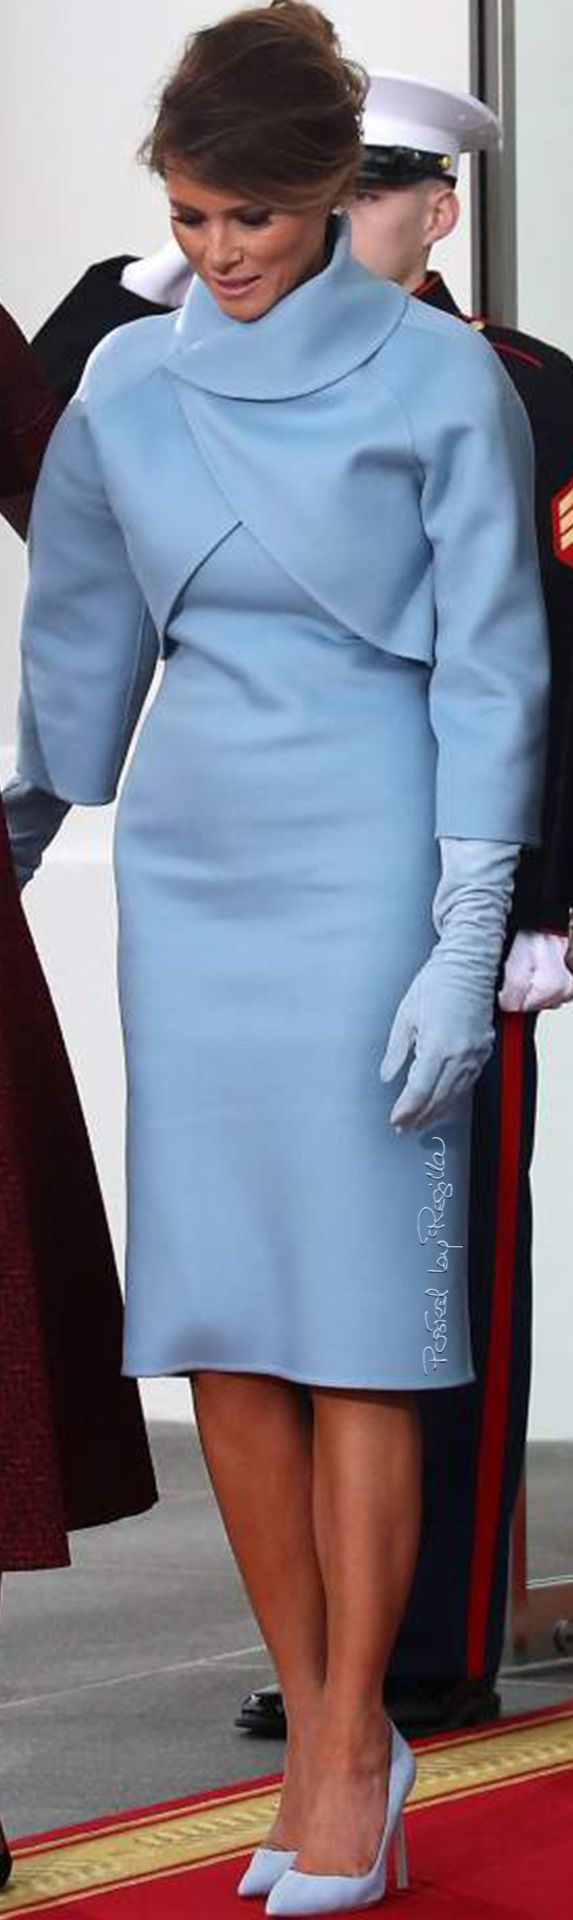 Beautiful in blue!! /Regilla ⚜ Melania Trump